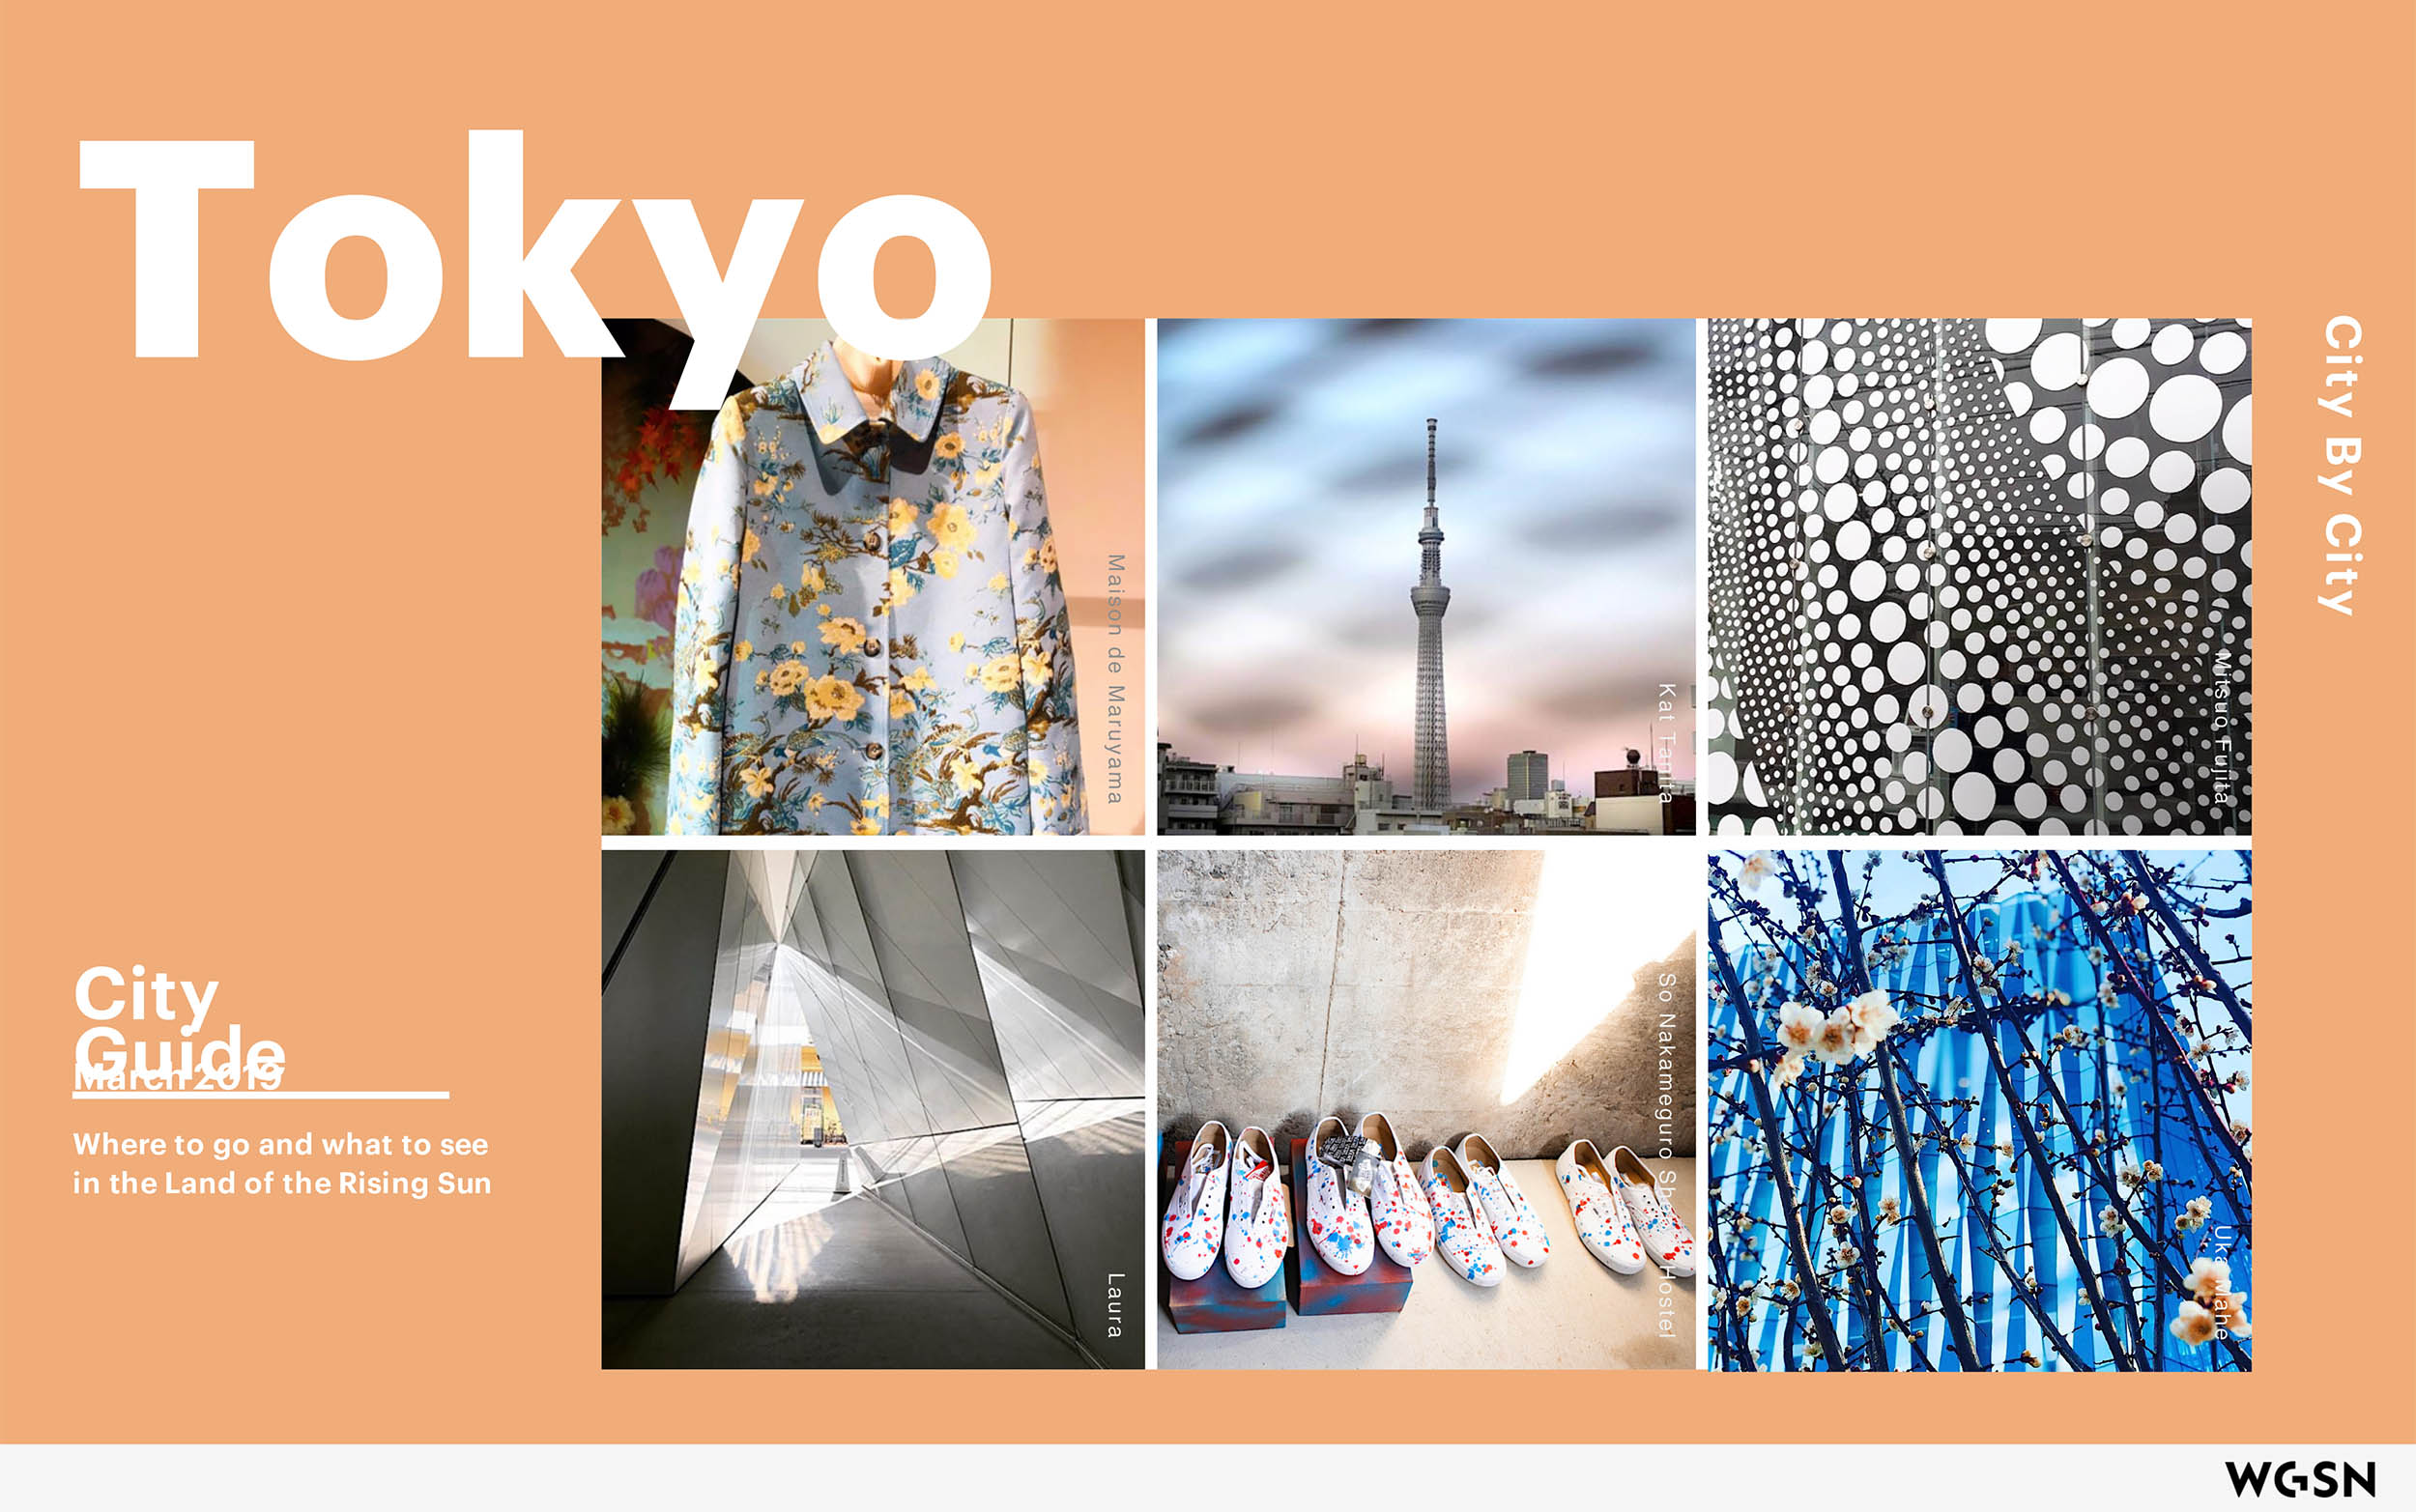 WGSN Tokyo City Guides